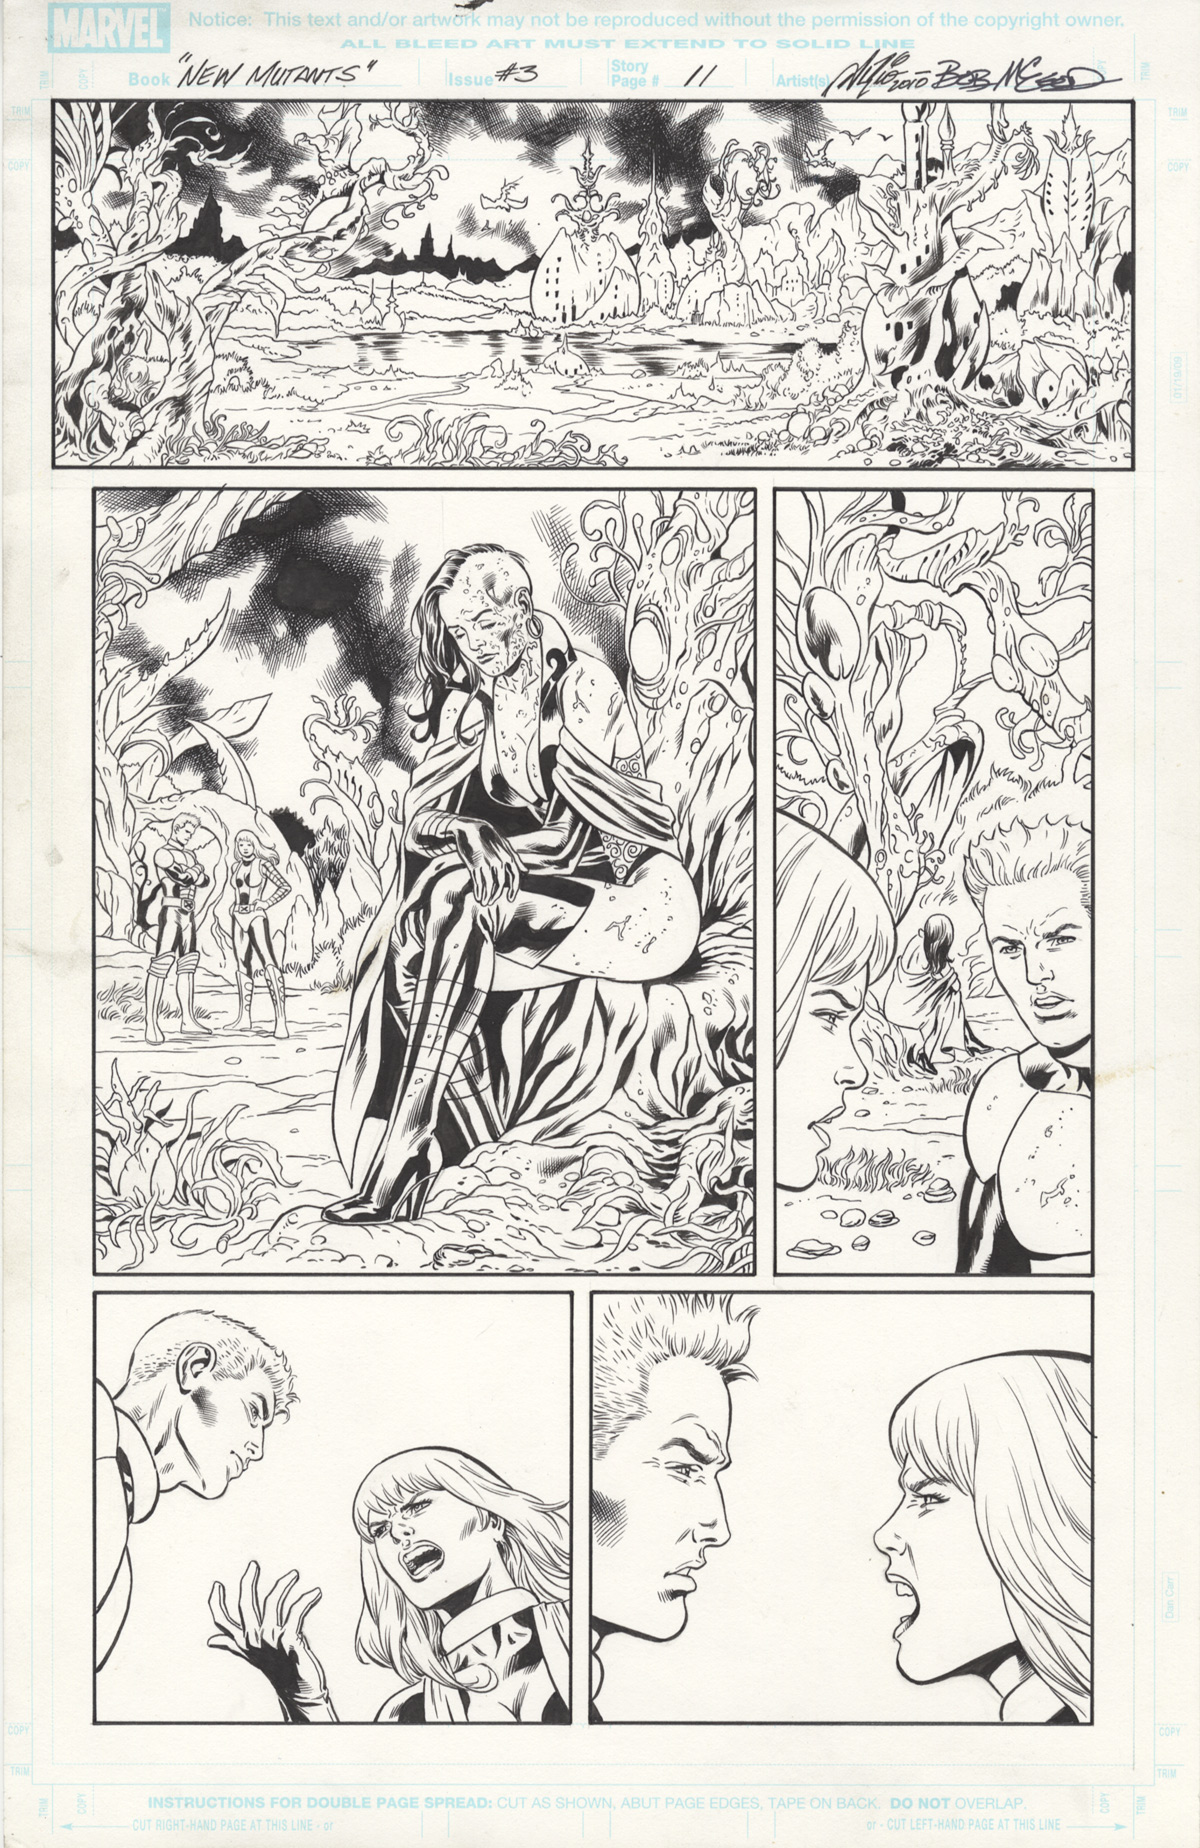 New Mutants Forever #3 page 11 Original Art by Al Rio and Bob McLeod